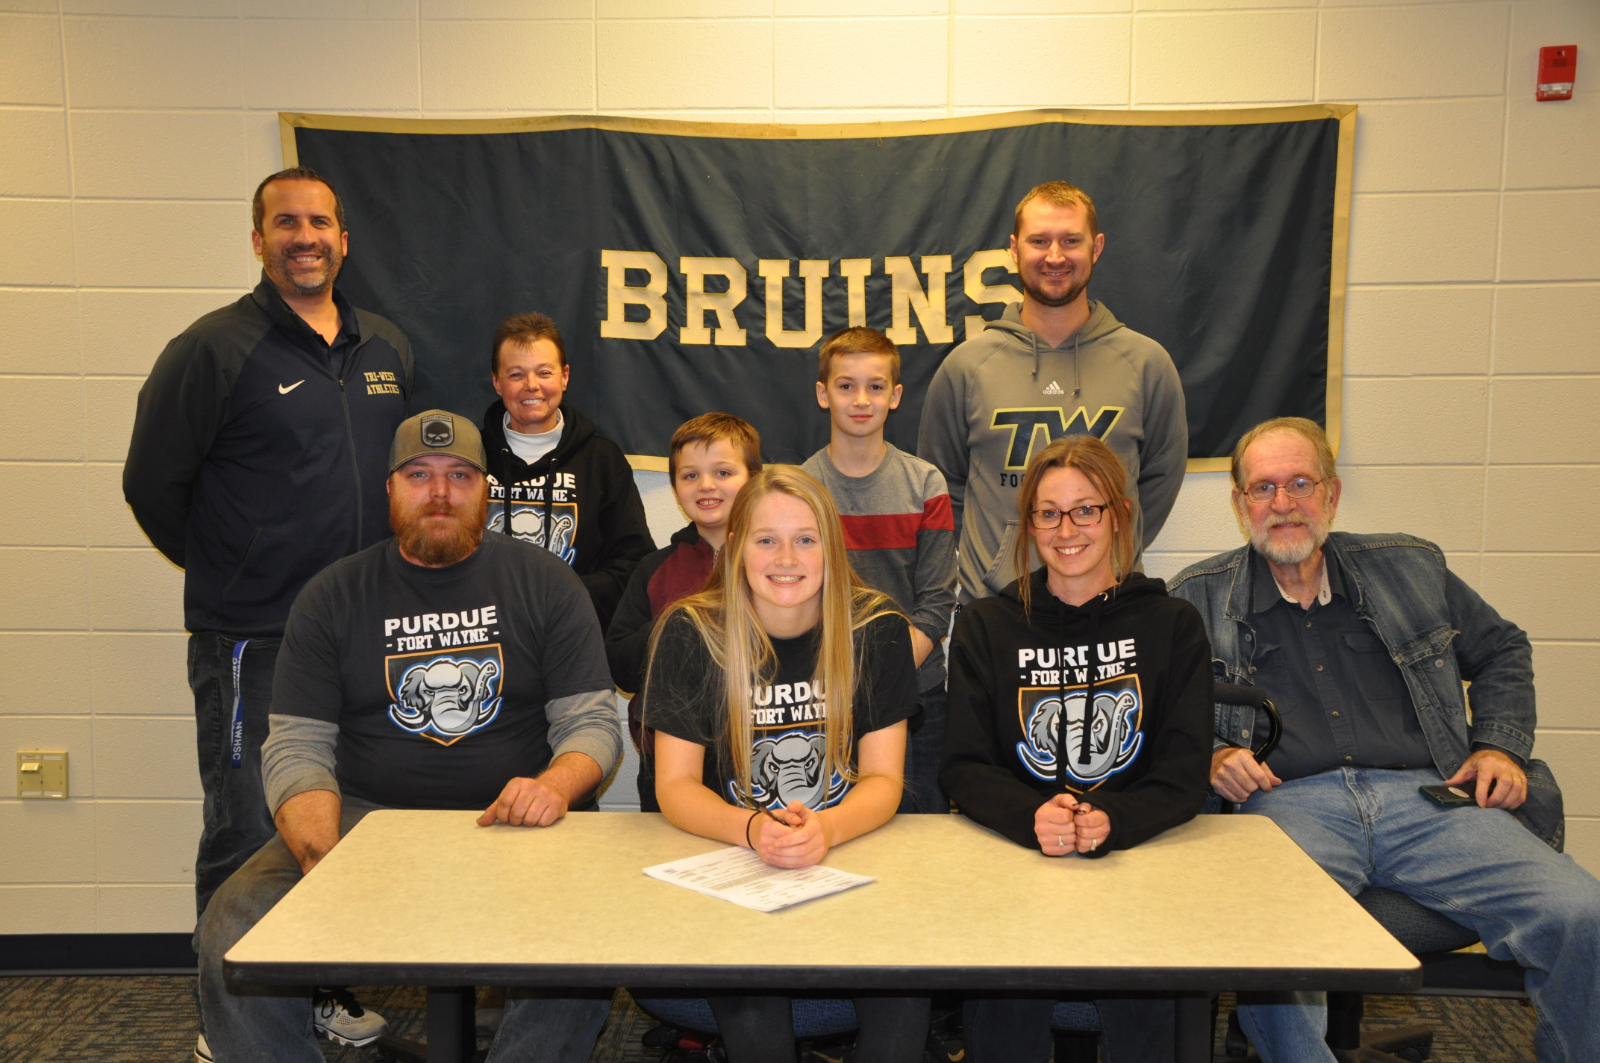 Payton Waling Signs for Track & Field